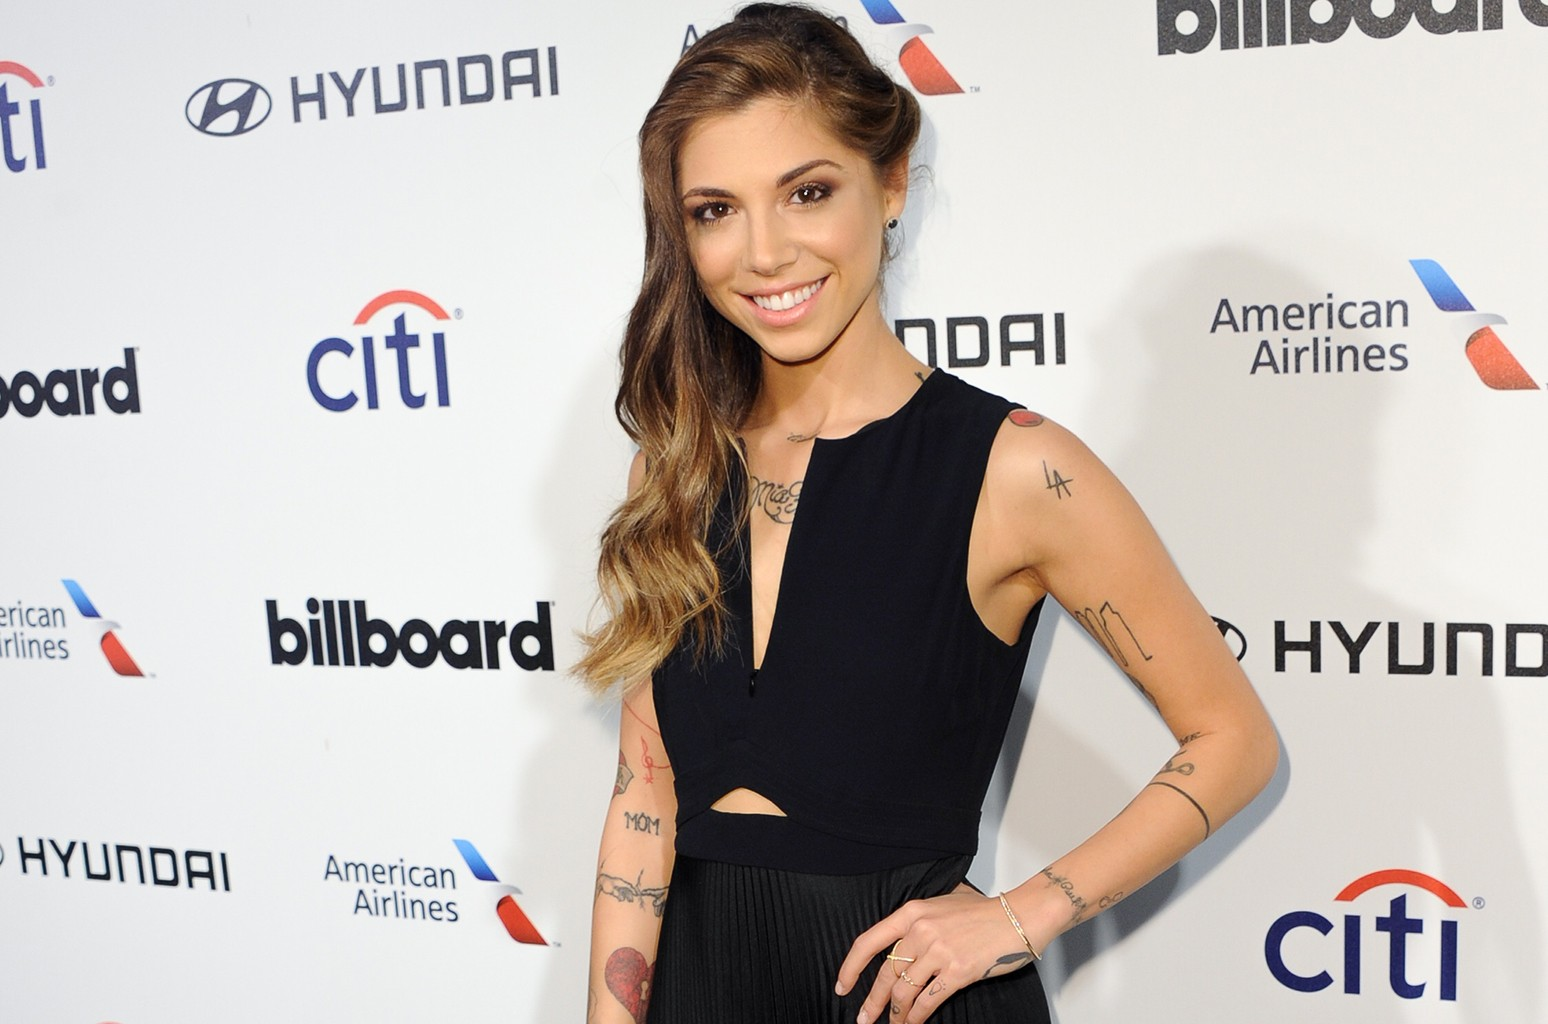 Christina Perri attends the 2015 Billboard Power 100 Celebration at Bouchon on Feb. 5, 2015 in Beverly Hills, Calif.